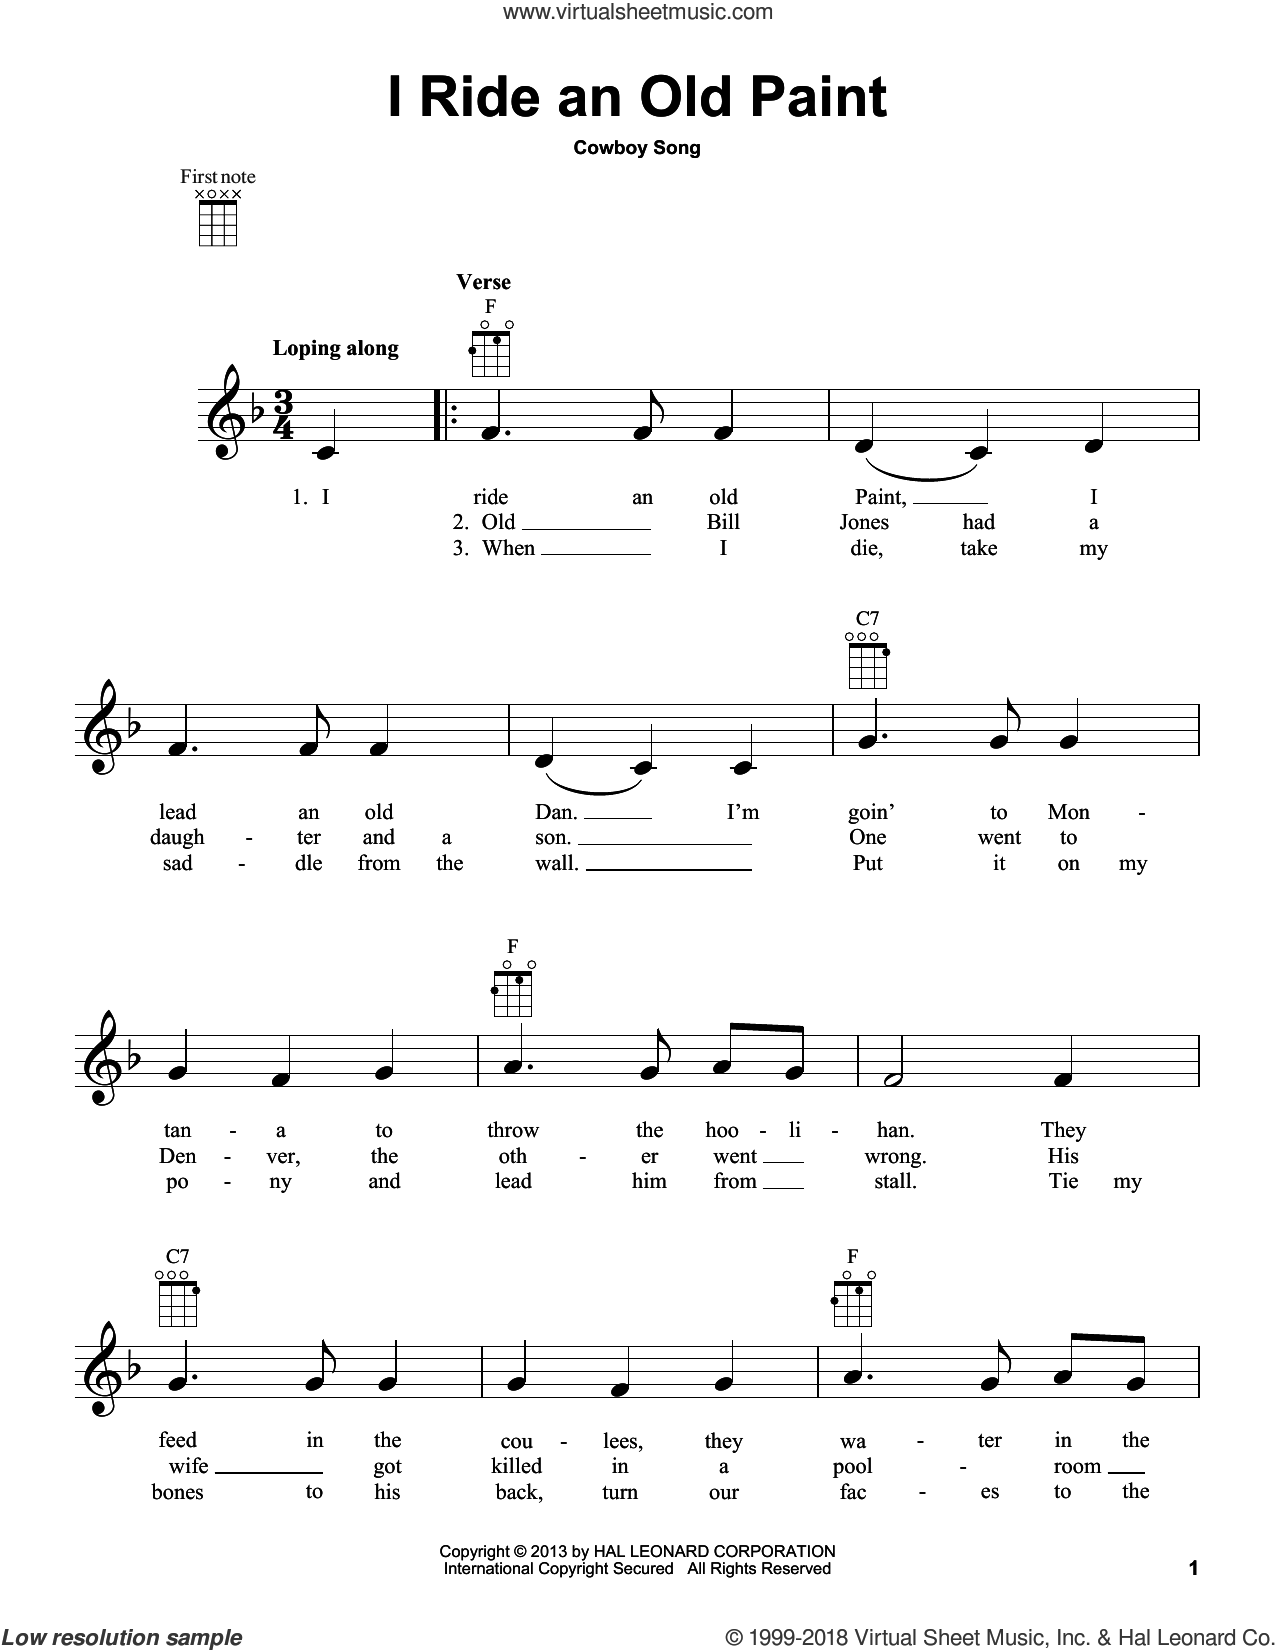 I Ride An Old Paint sheet music for ukulele, intermediate skill level